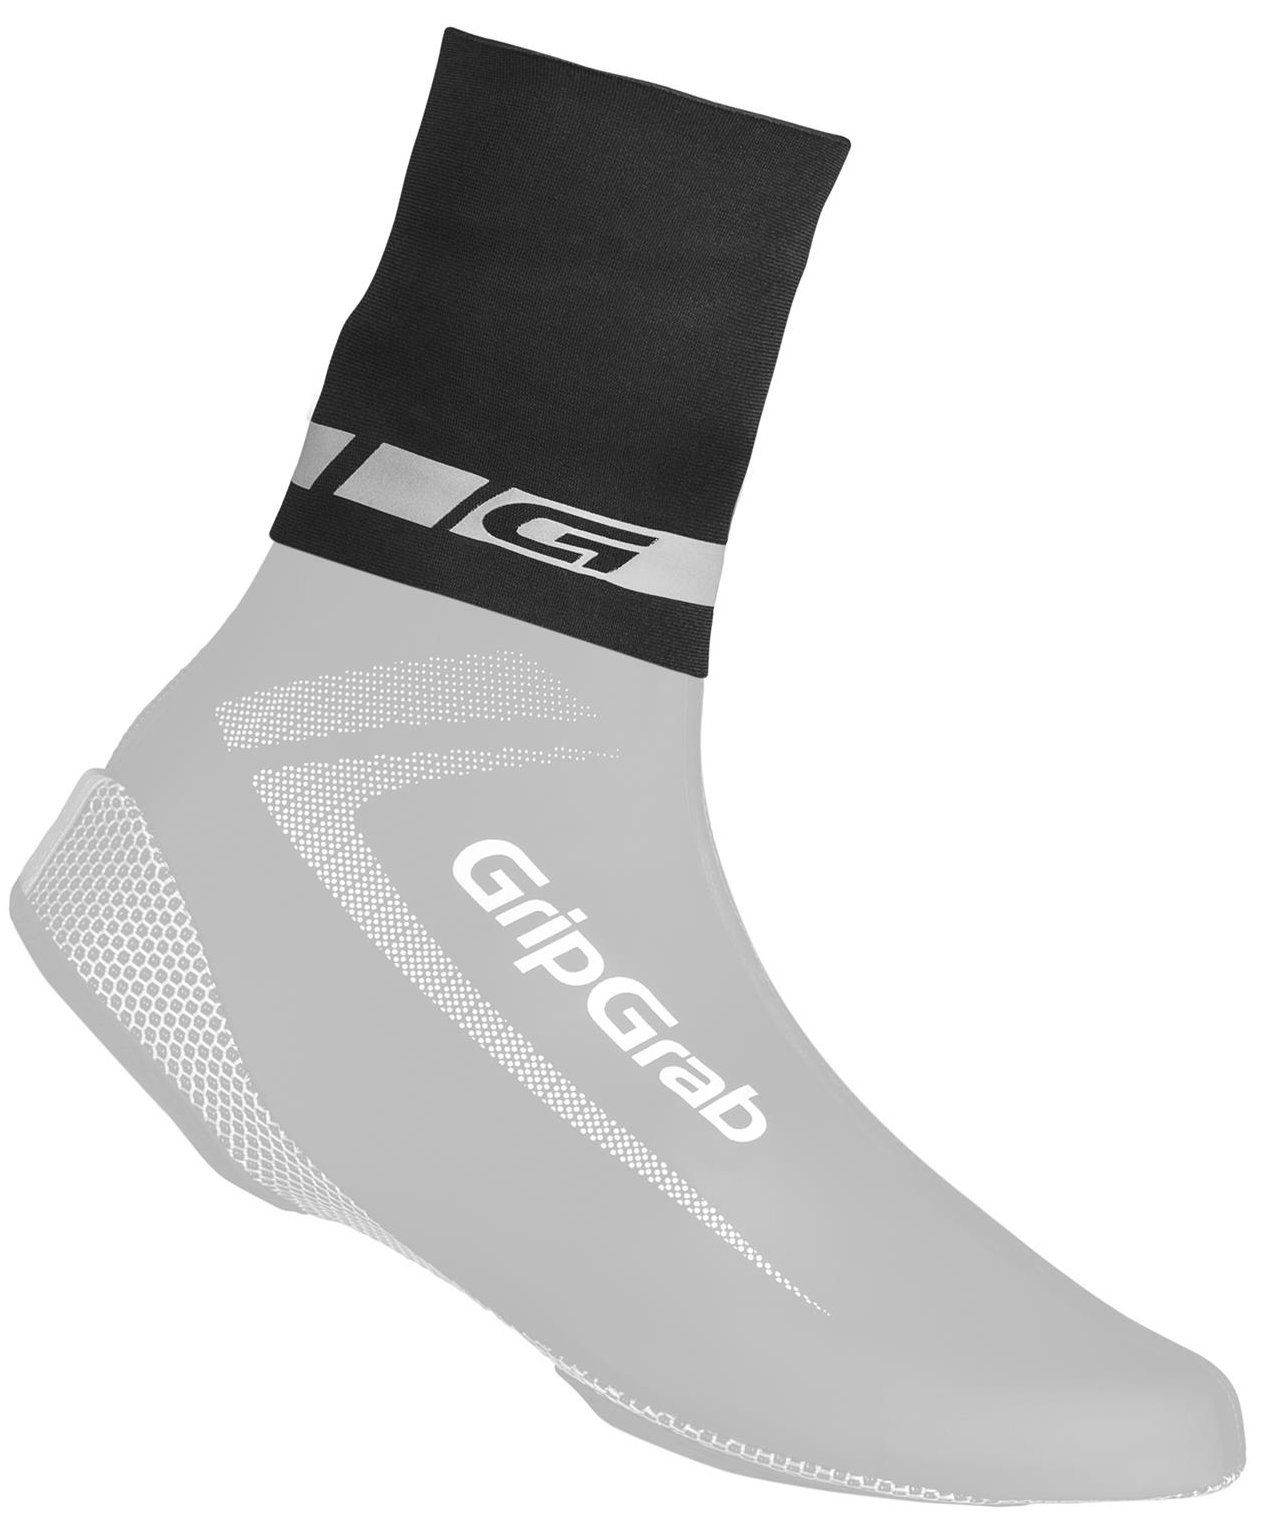 GripGrab CyclingGaiter Ankel Forsegler